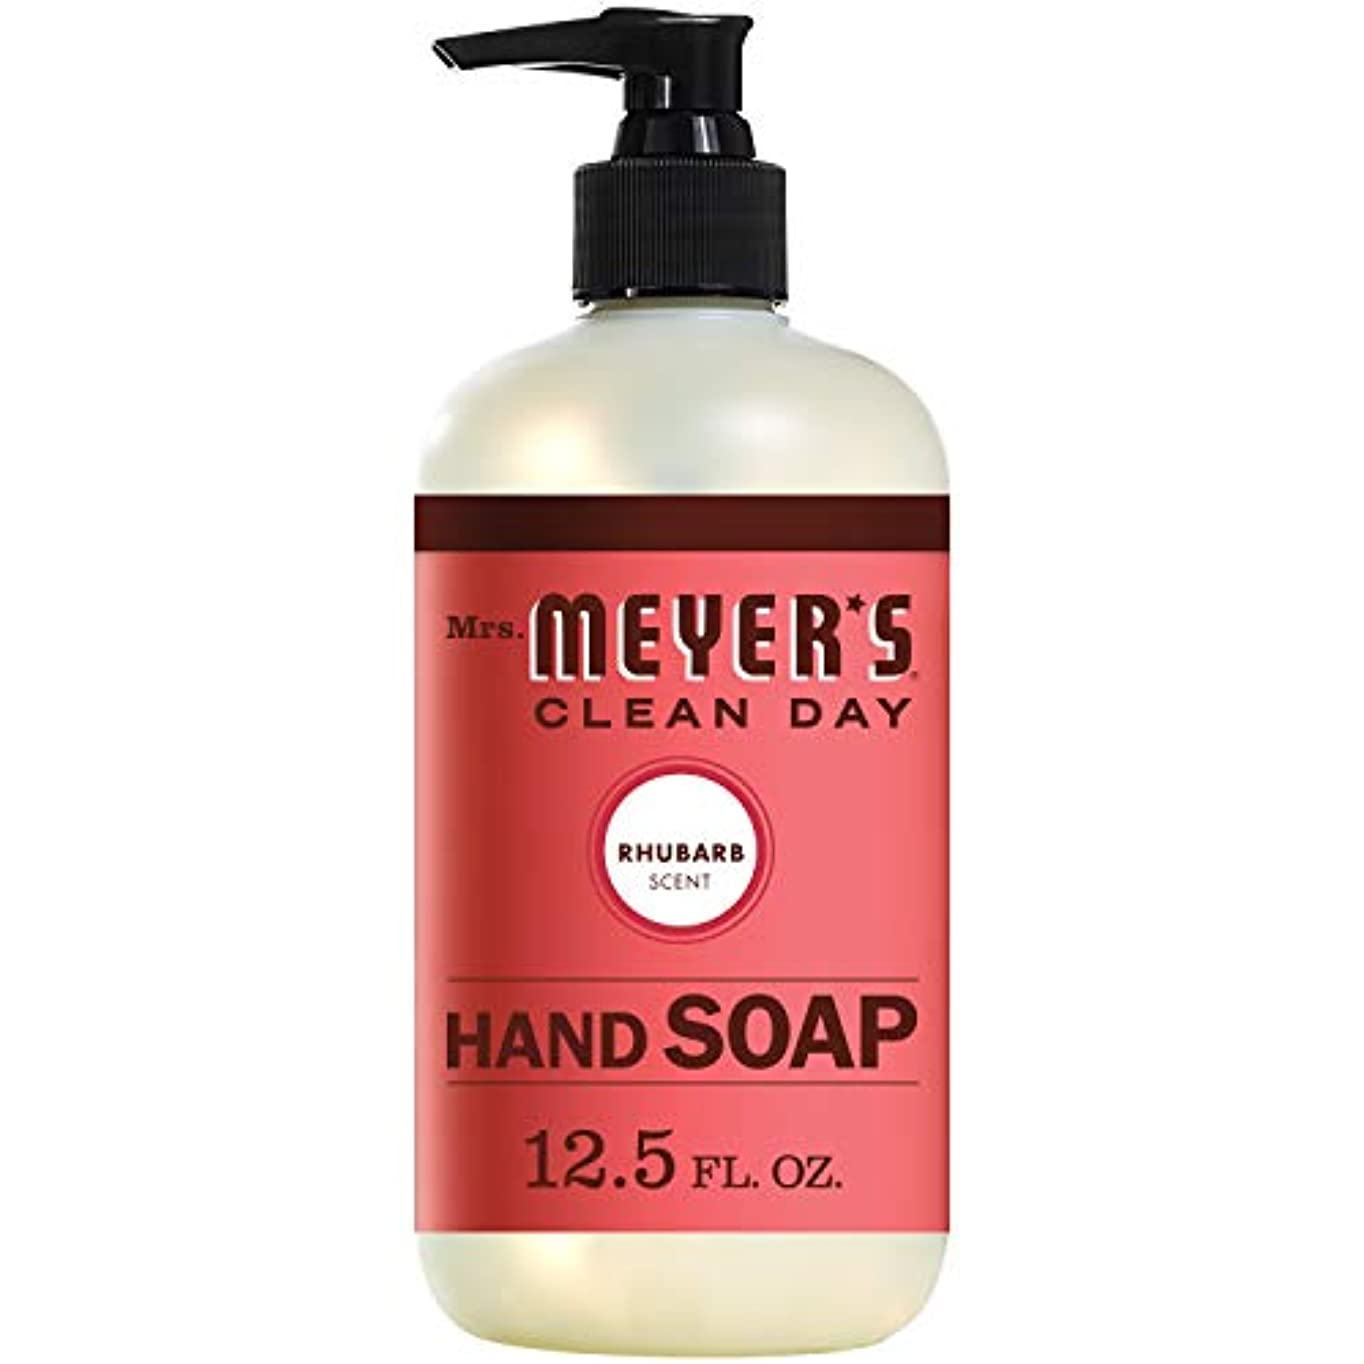 構想する克服する閉塞Mrs. Meyers Clean Day, Liquid Hand Soap, Rhubarb Scent, 12.5 fl oz (370 ml)